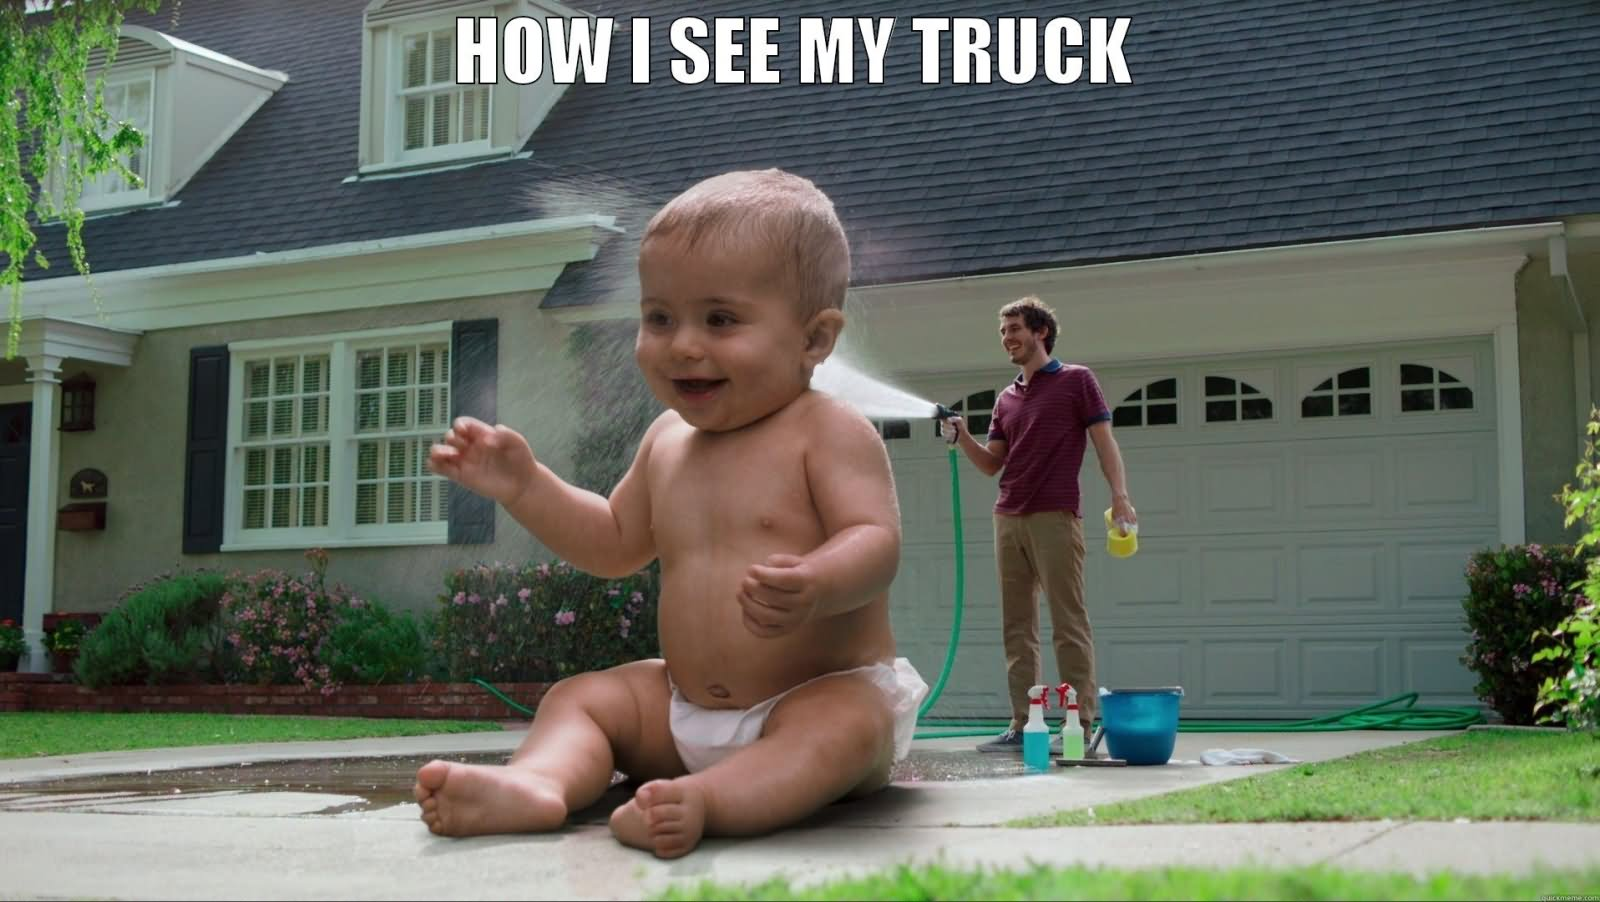 How I See My Truck Funny Meme Image